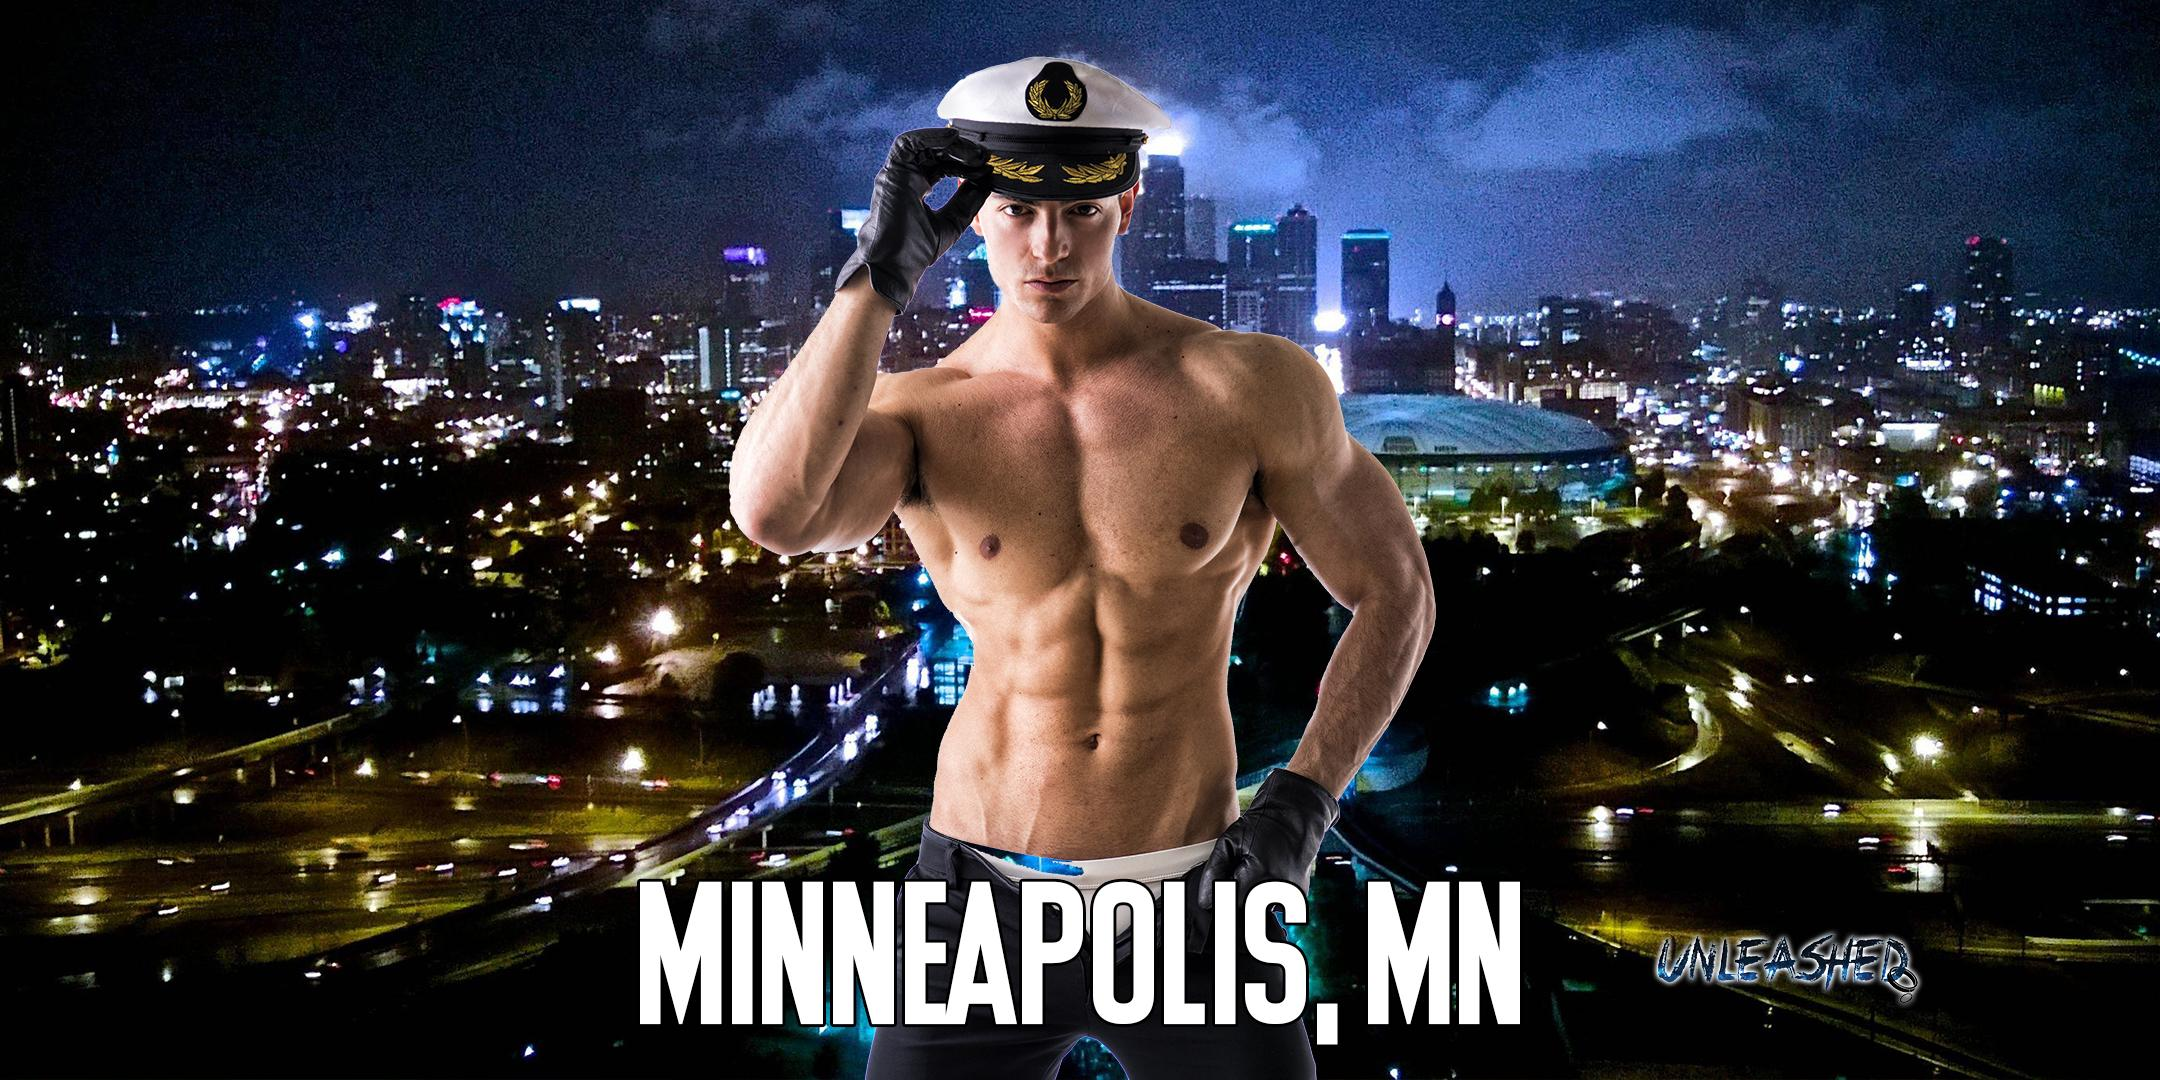 Male Strippers UNLEASHED Male Revue Minneapolis, MN 8-10 PM